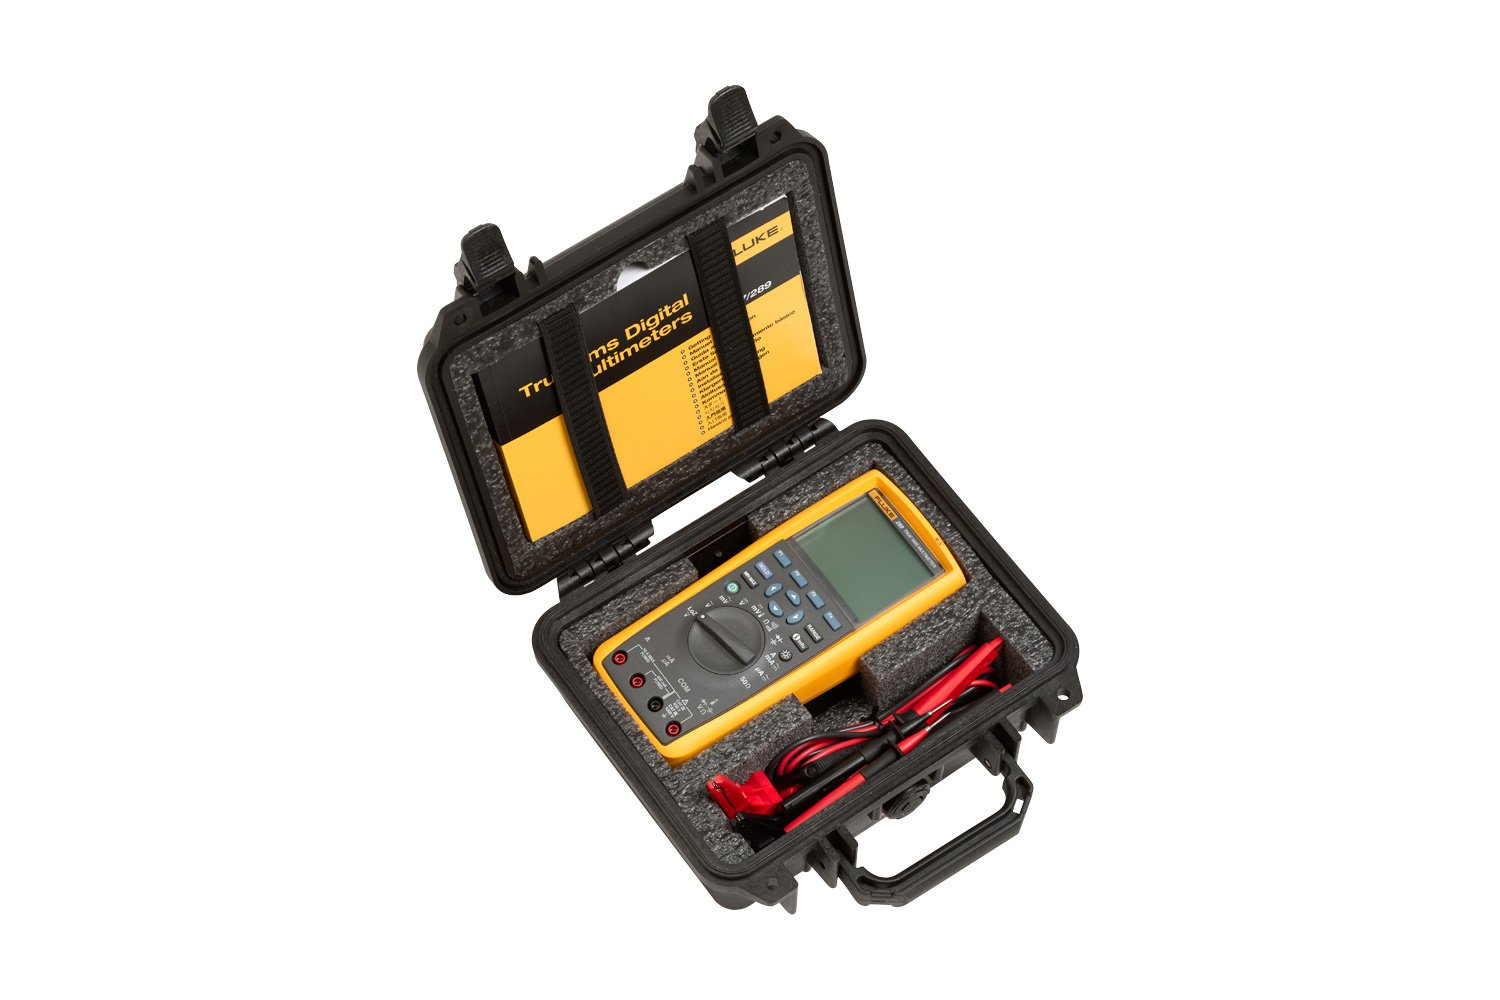 Fluke CXT280 Rugged Pelican Hard Case 280 Series